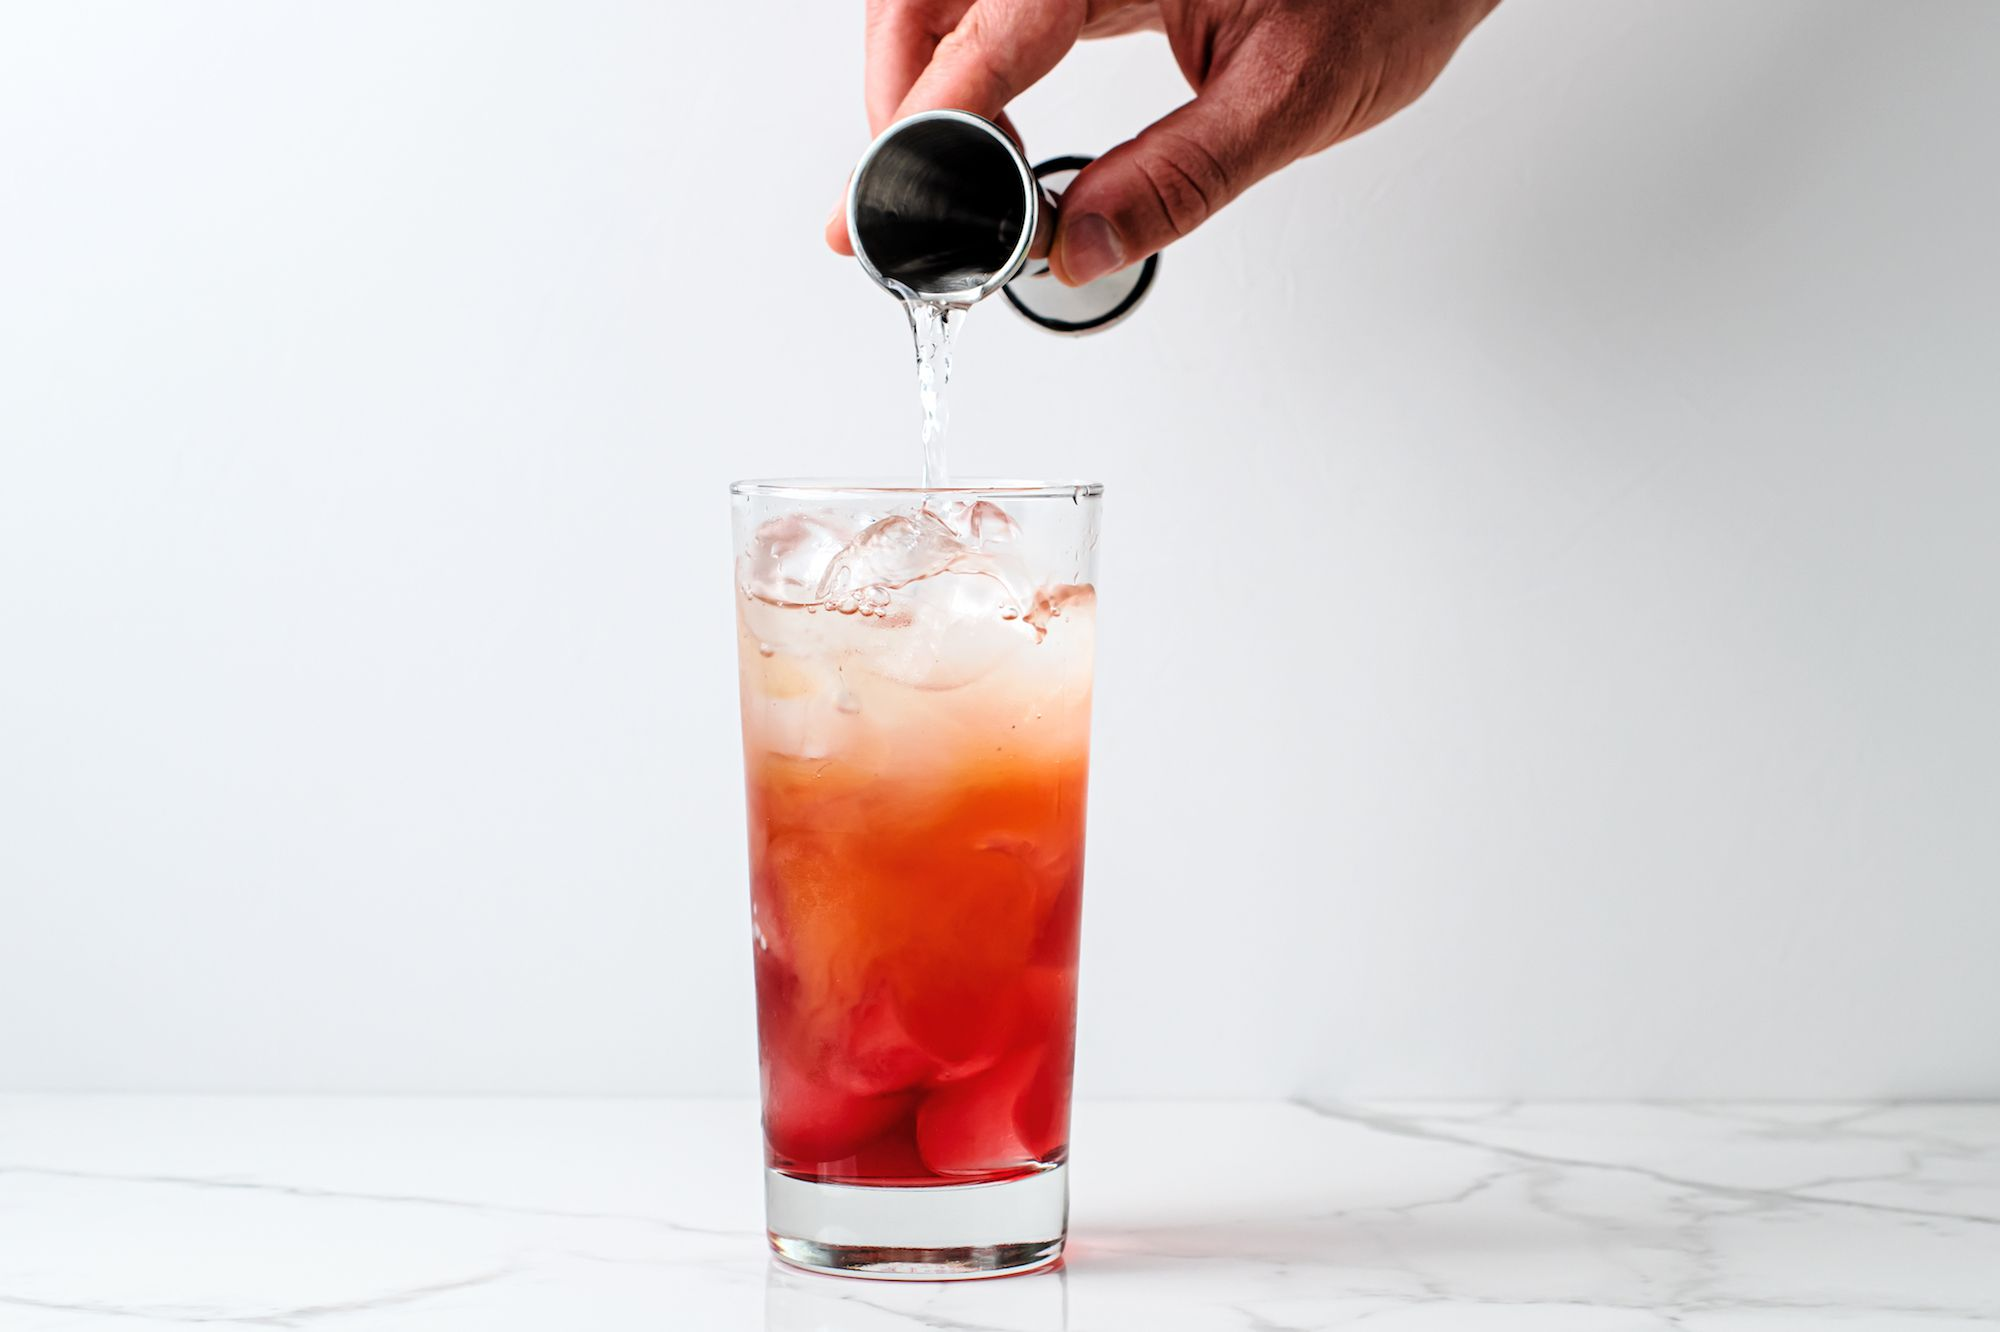 Madras cocktail ingredients poured into a glass